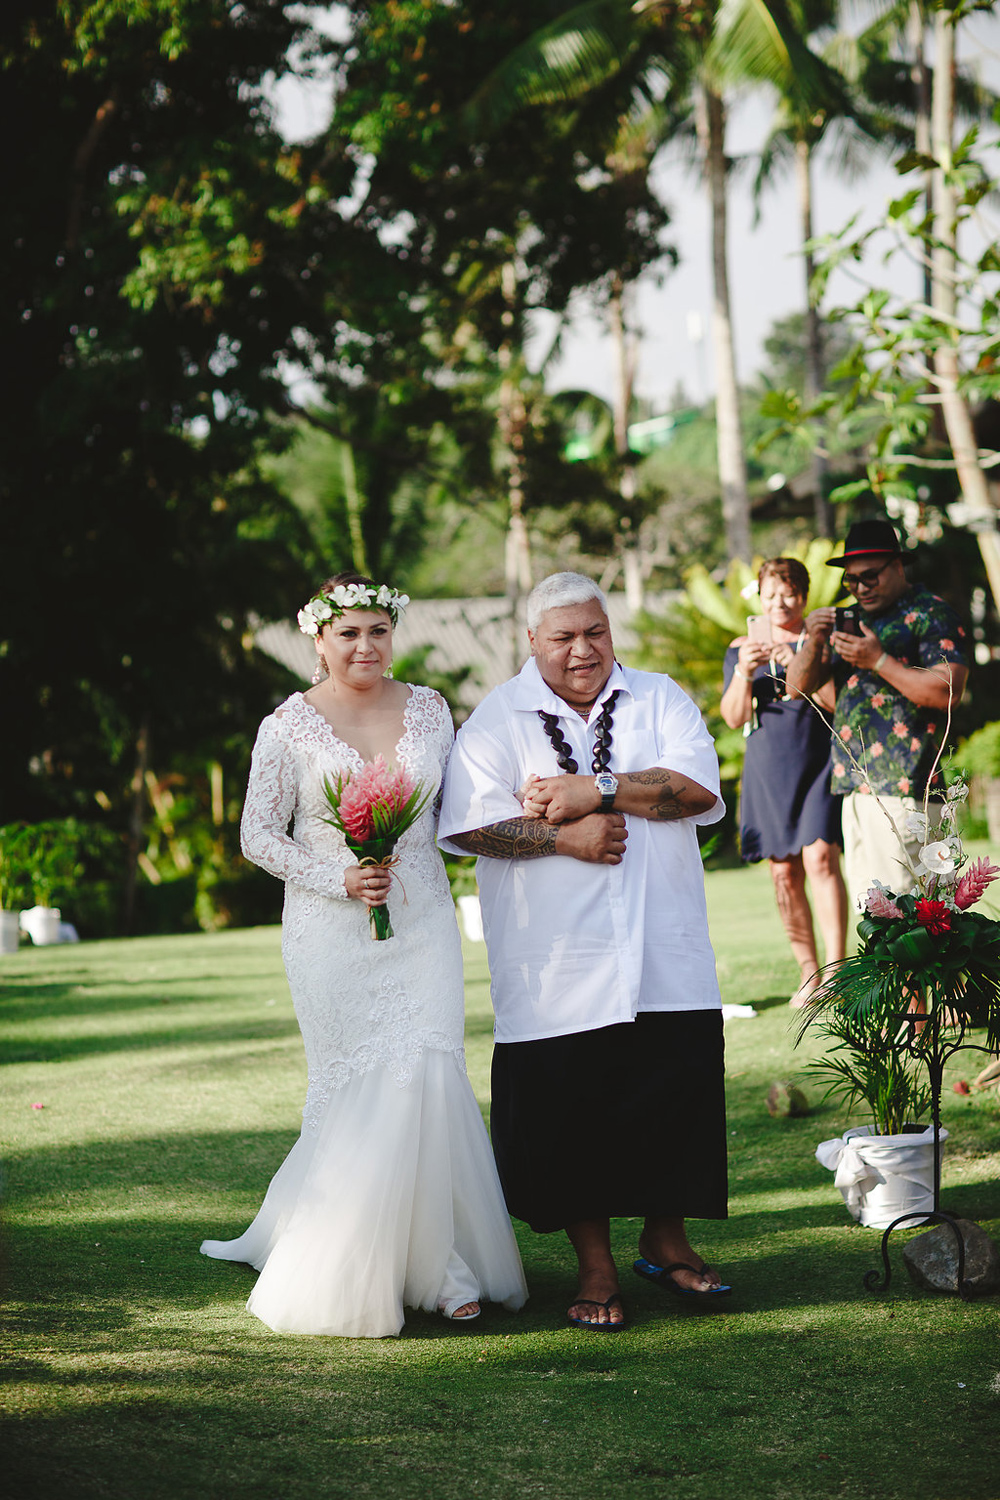 076-warwick-fiji-wedding-photographer.jpg